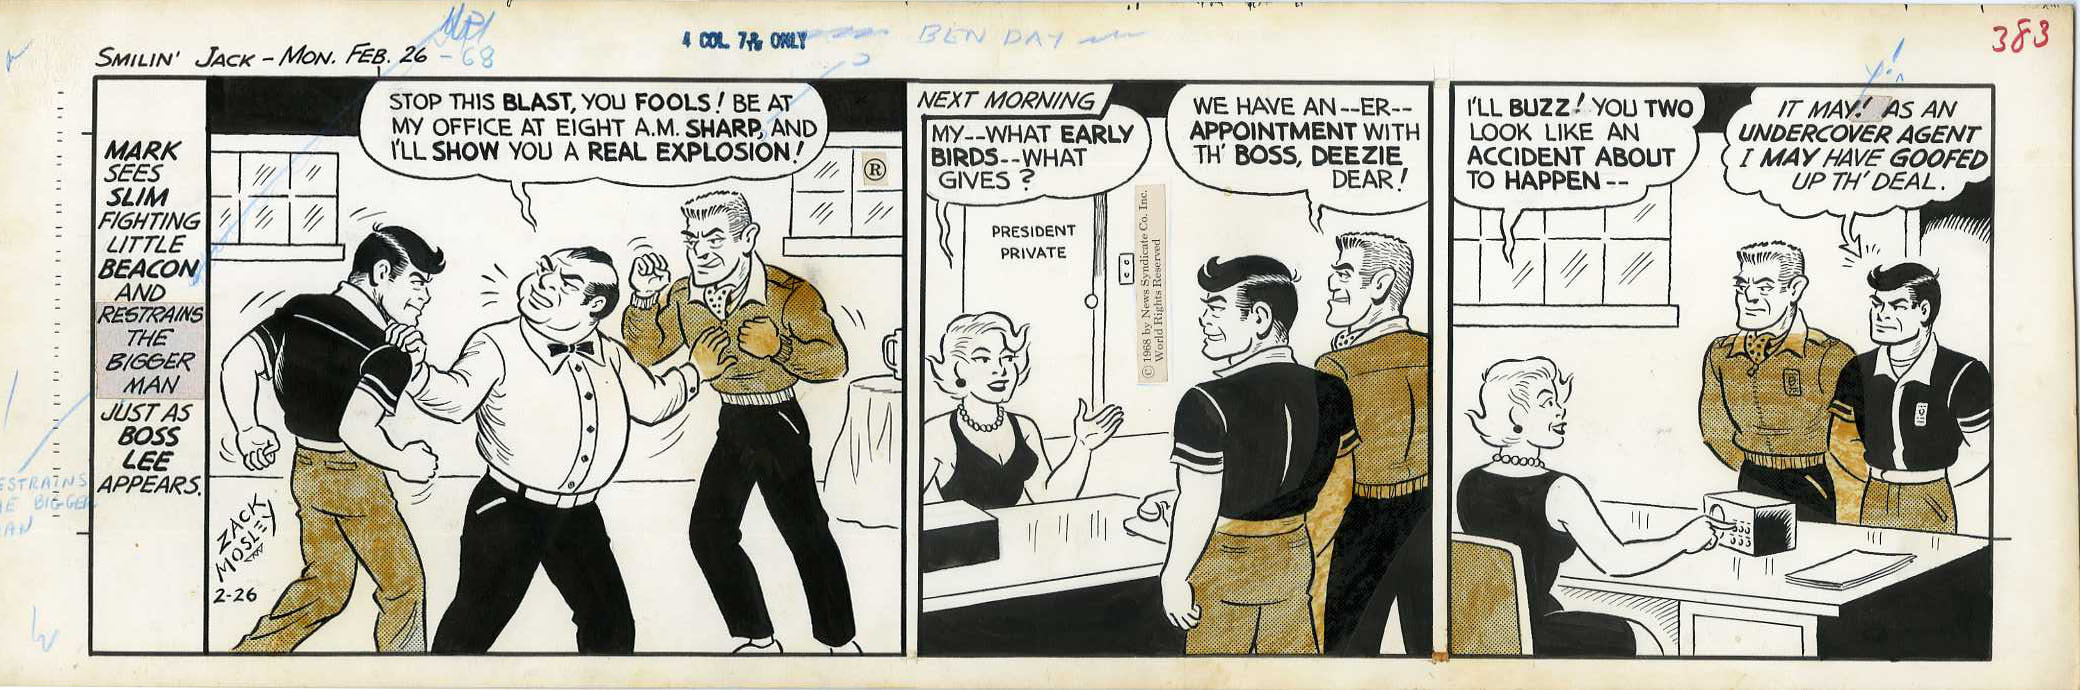 ZACK MOSLEY - SMILIN' JACK DAILY STRIP ORIG ART 2-26-68 APPT WITH THE BOSS